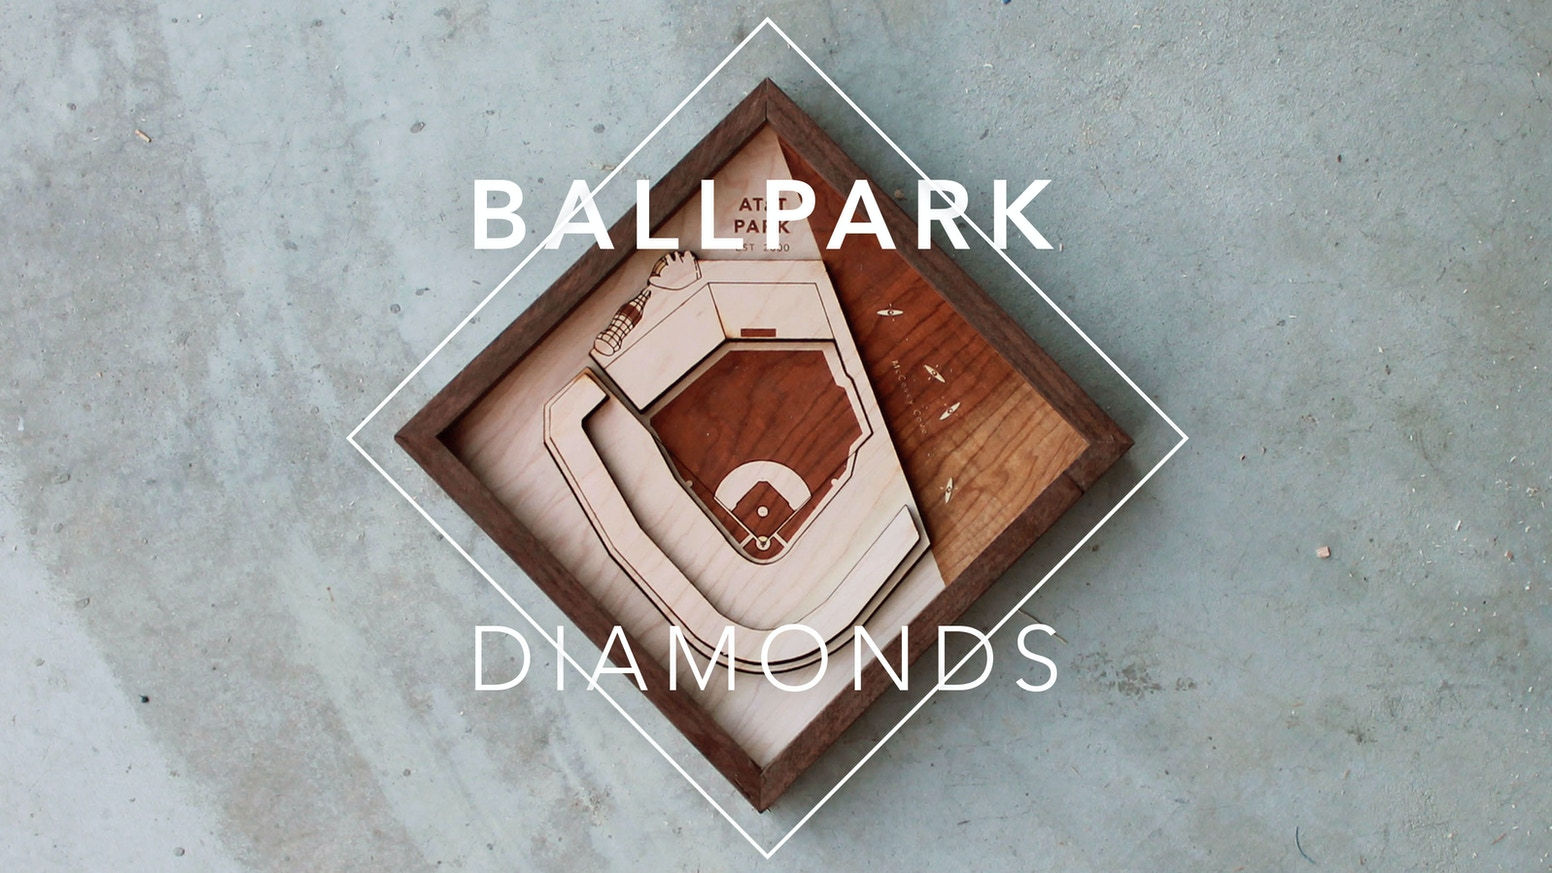 Hand assembled relief sculptures of your favorite ballpark or stadium; ready to hang.